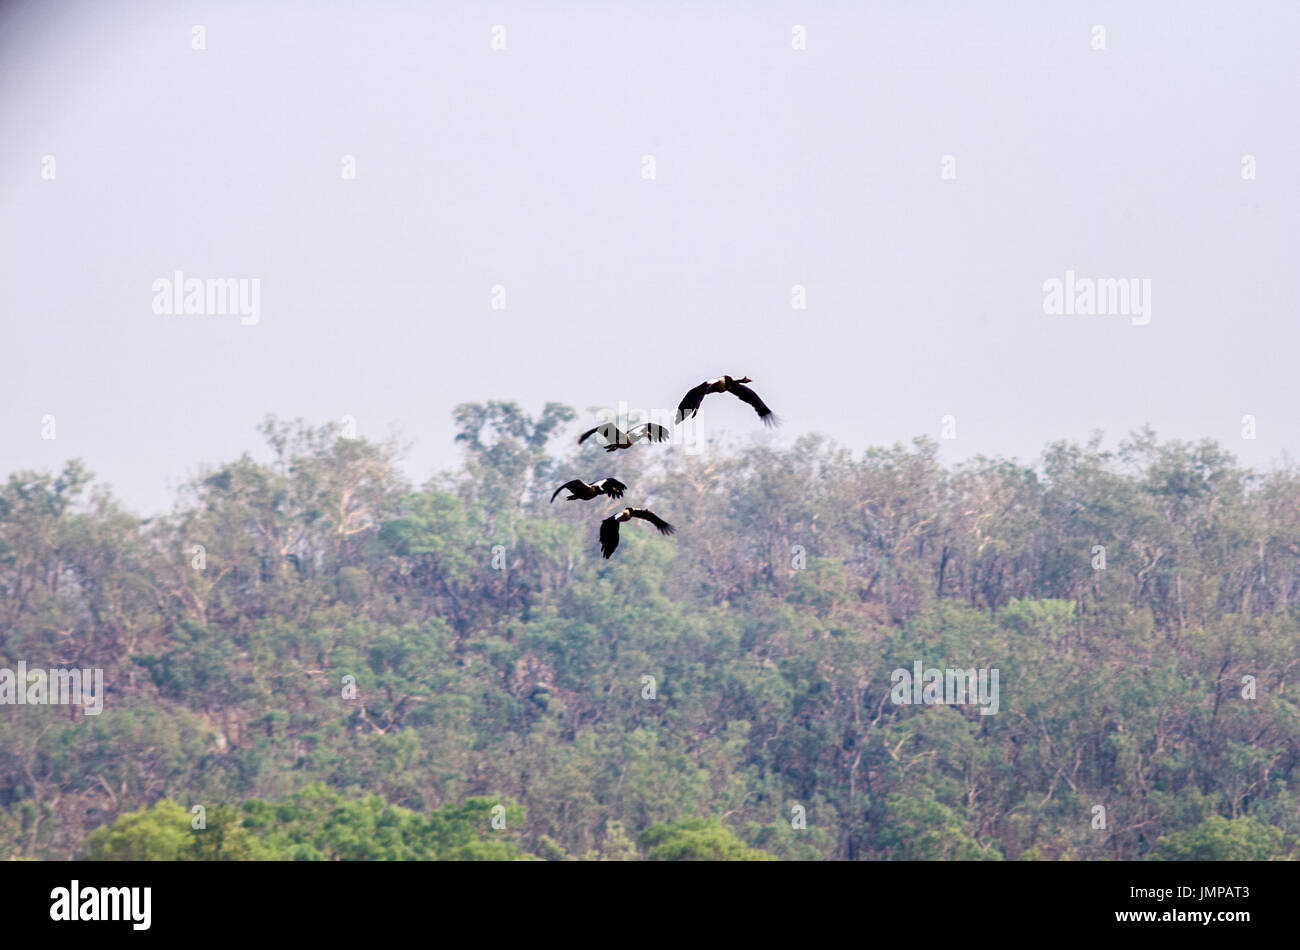 a flock of magpie geese flying over background of  trees and overcast sky ready to land on water. - Stock Image